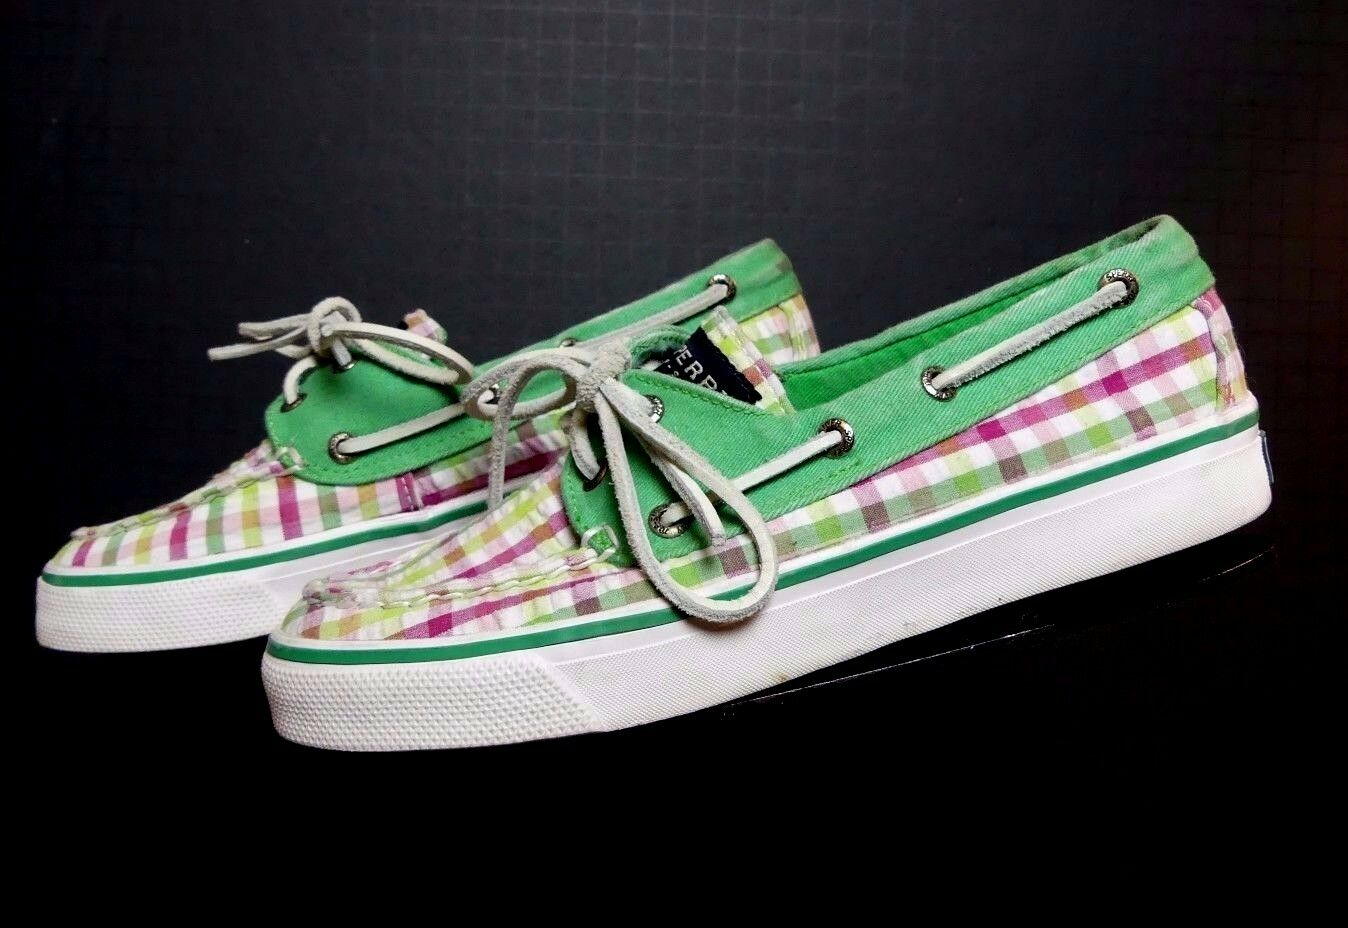 Women's Sperry Top-Sider Muti-color Madras Canvas Classic Boat shoes Sz.6.5 MINTY